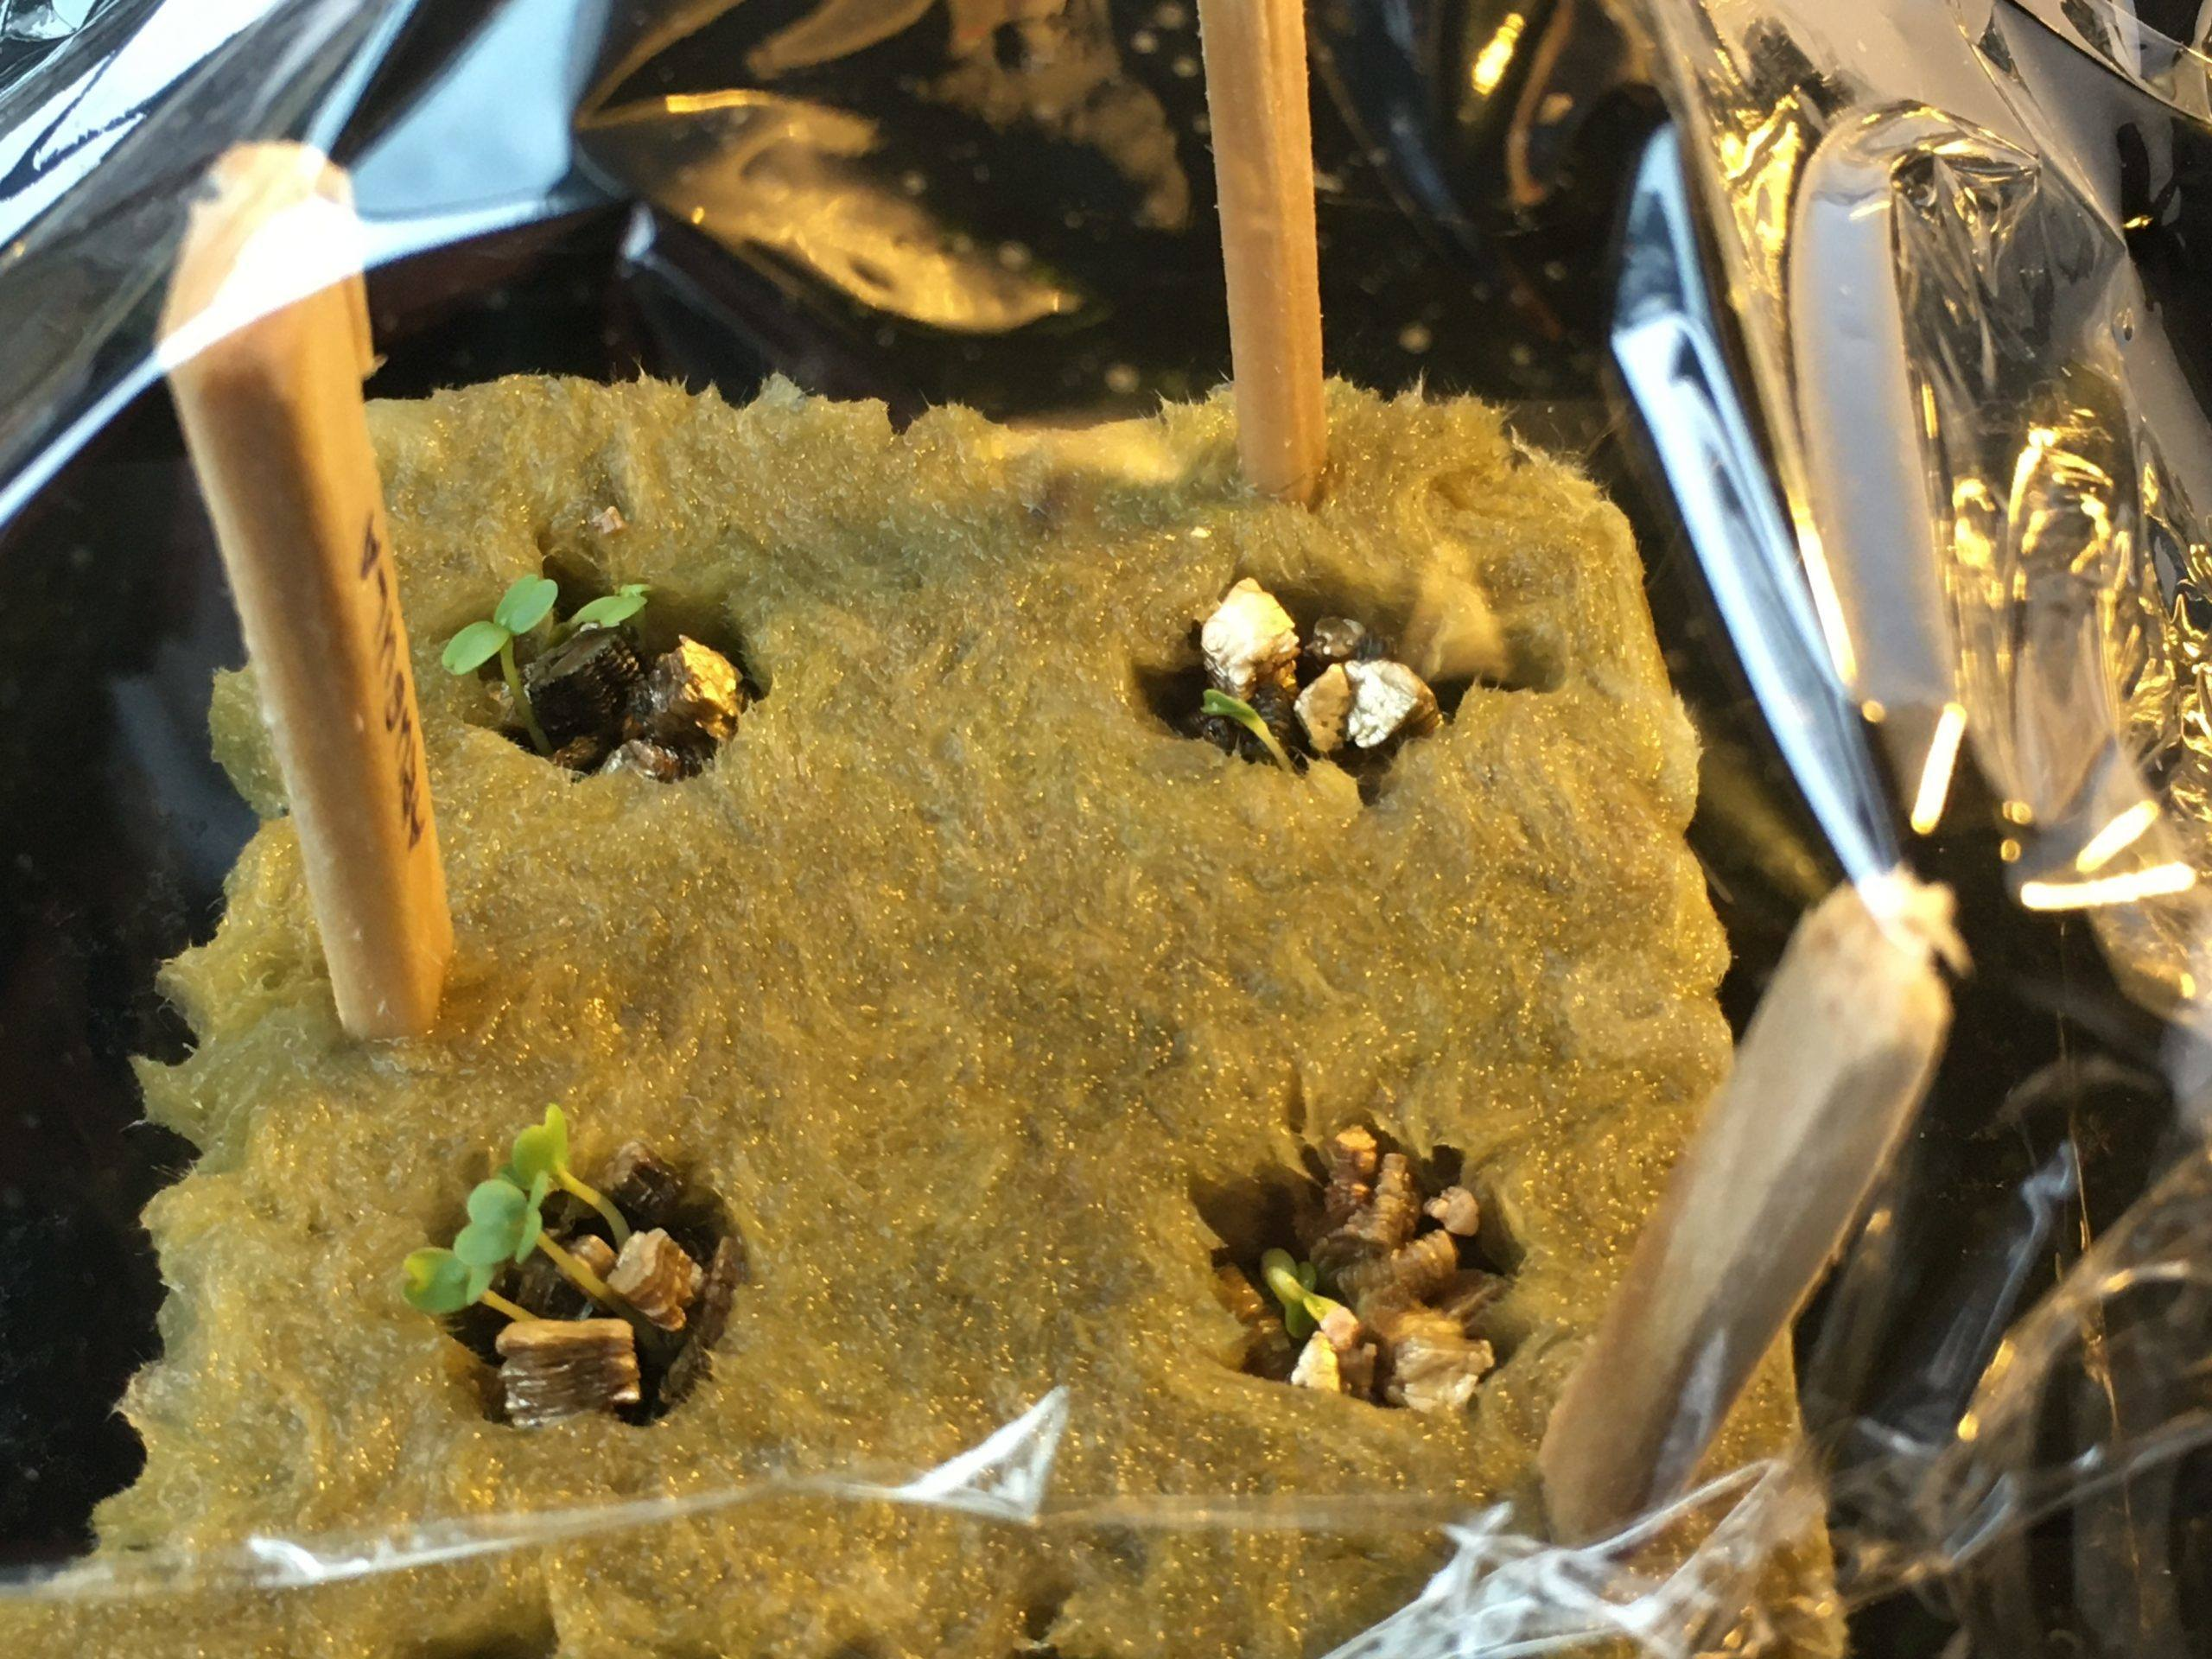 Tower Garden seed starter kit